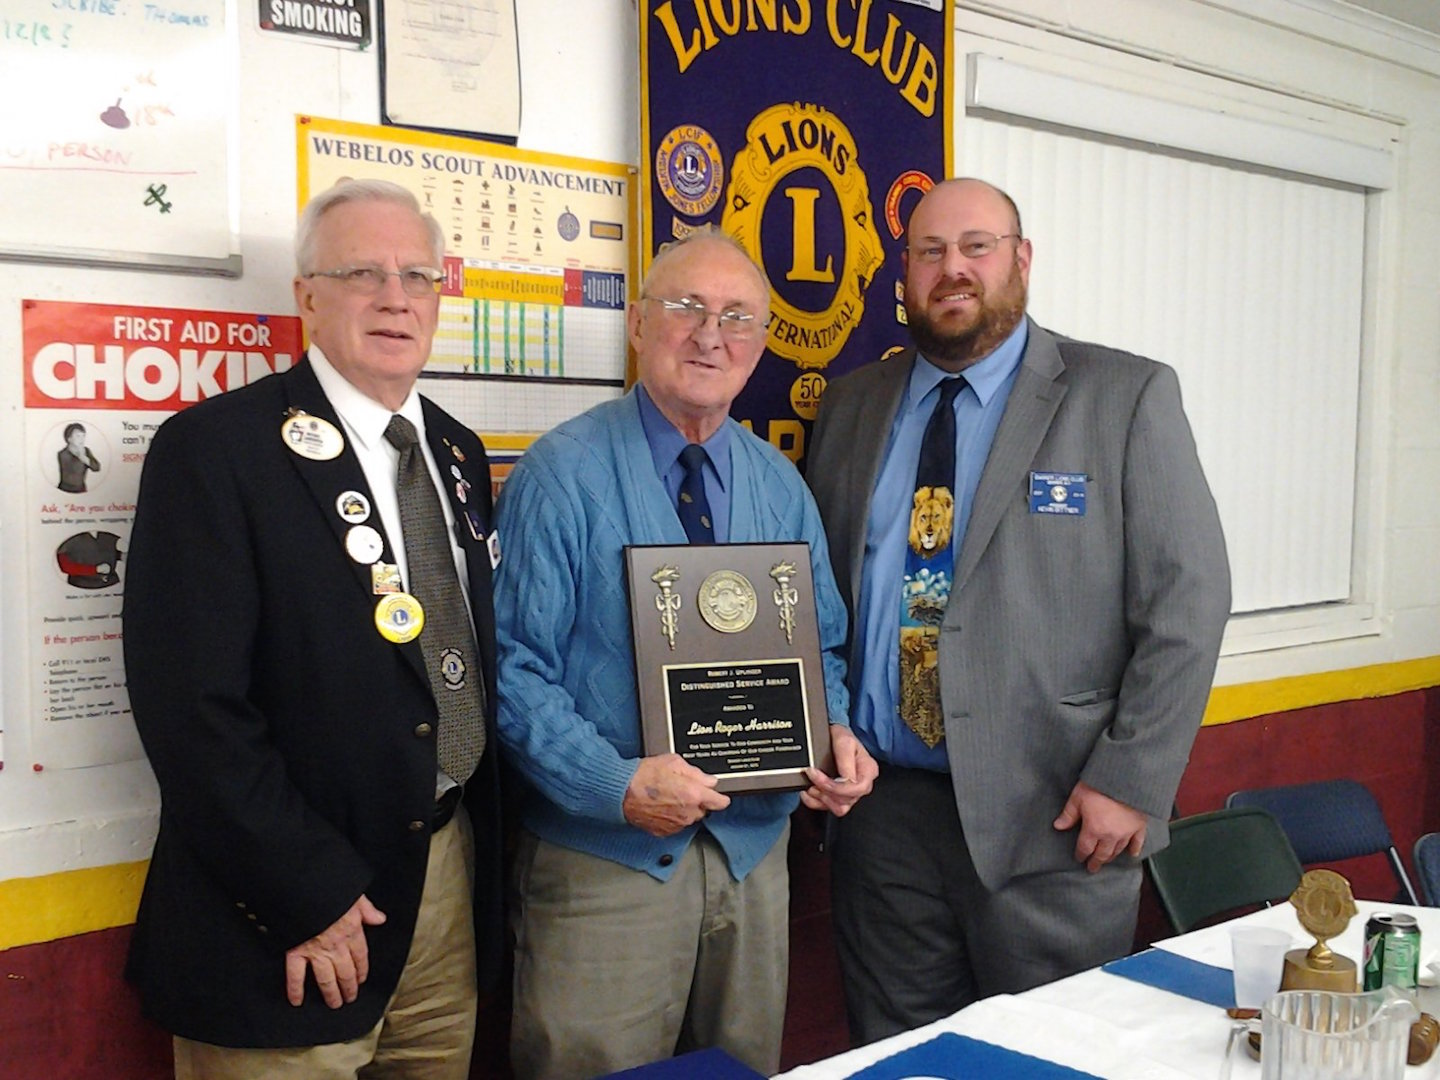 Lions District 20 N Gov. Mike, Lawkowski is shown with Lion Roger Harrison and Barker Lion's Club President Kevin Bittner. Harrison recently was presented with the Uplinger Award.